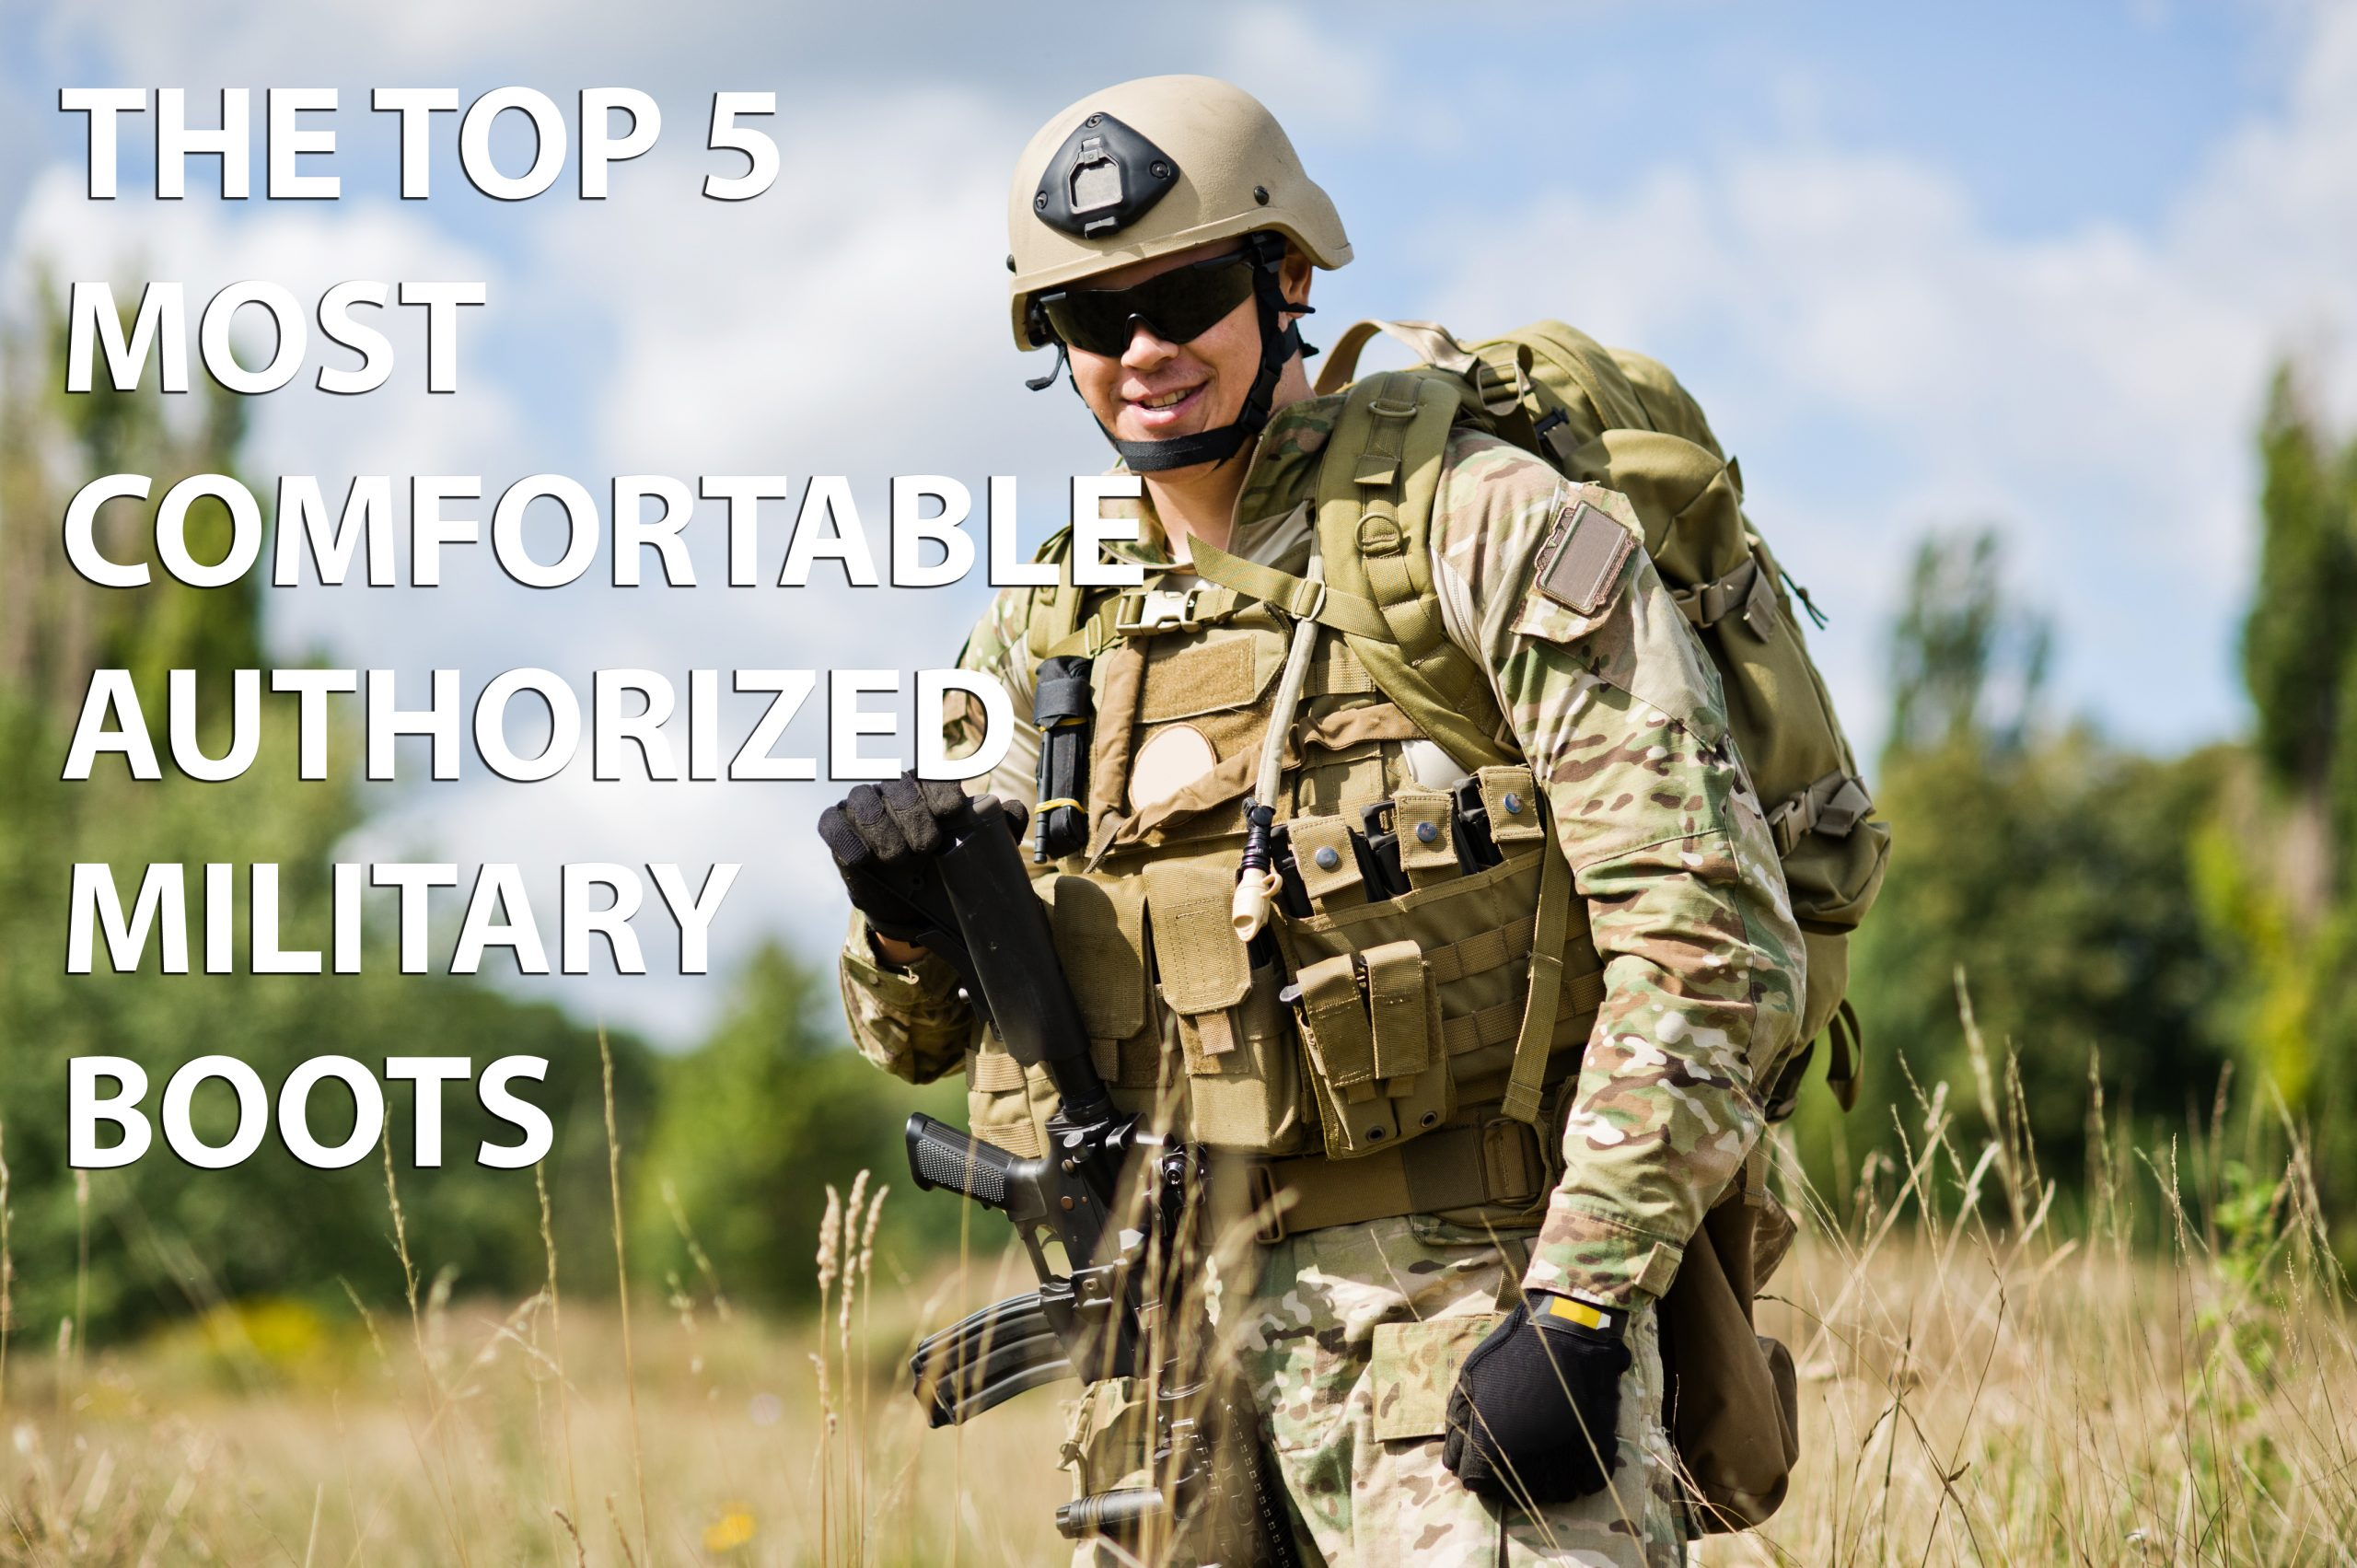 The top 5 most comfortable military boots 2018 authorized boots publicscrutiny Choice Image